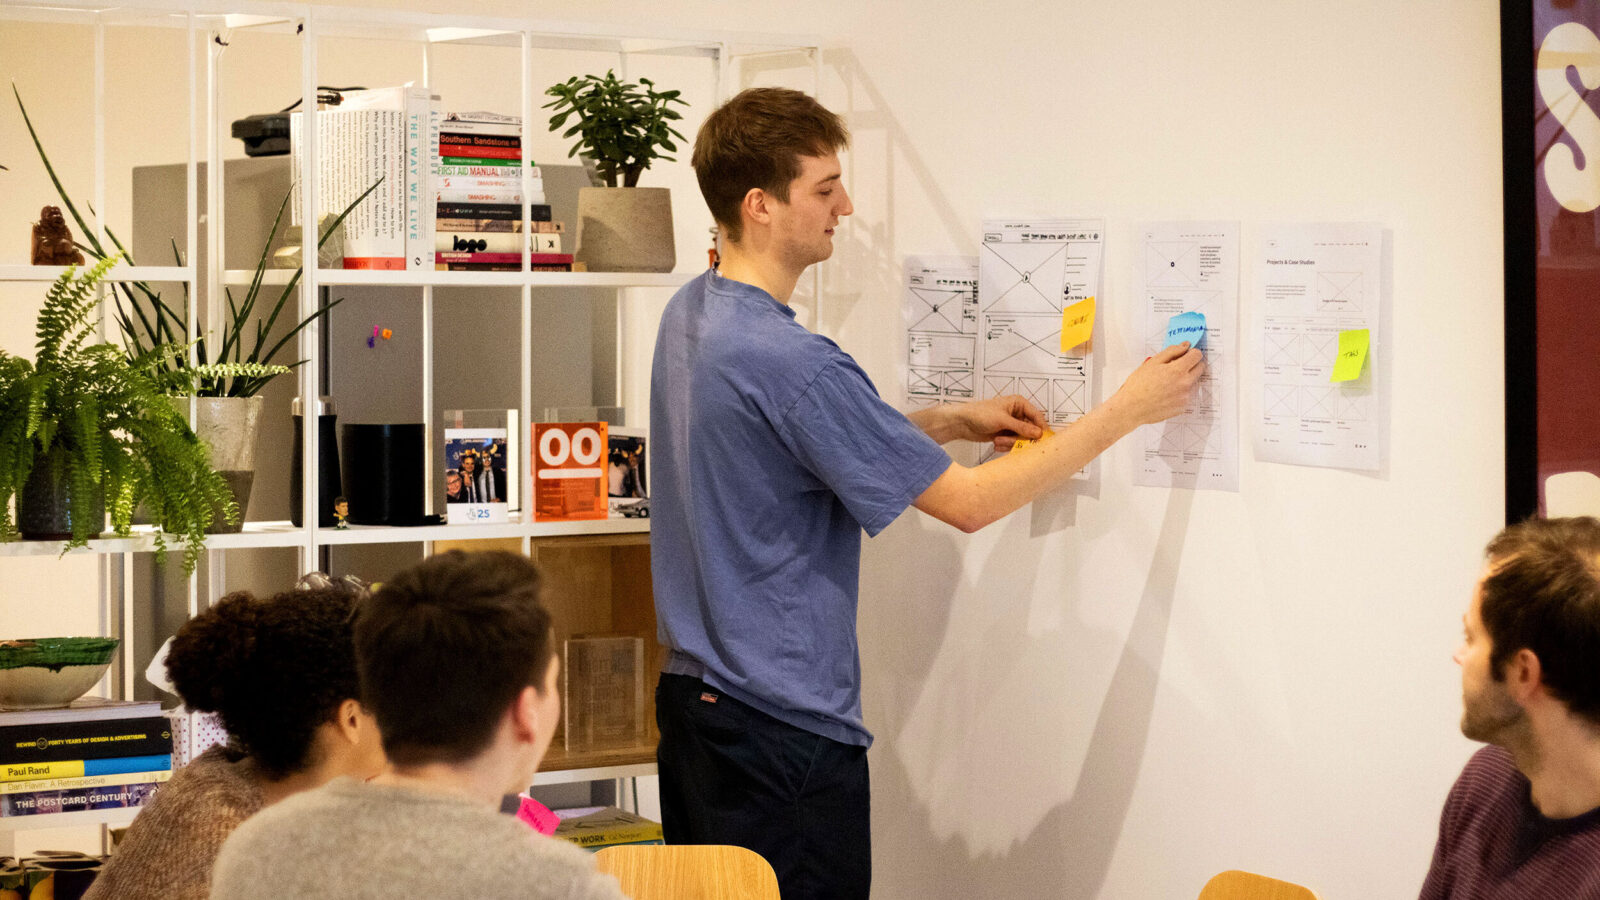 A team of web designers discuss wireframe designs by pinning them to the wall